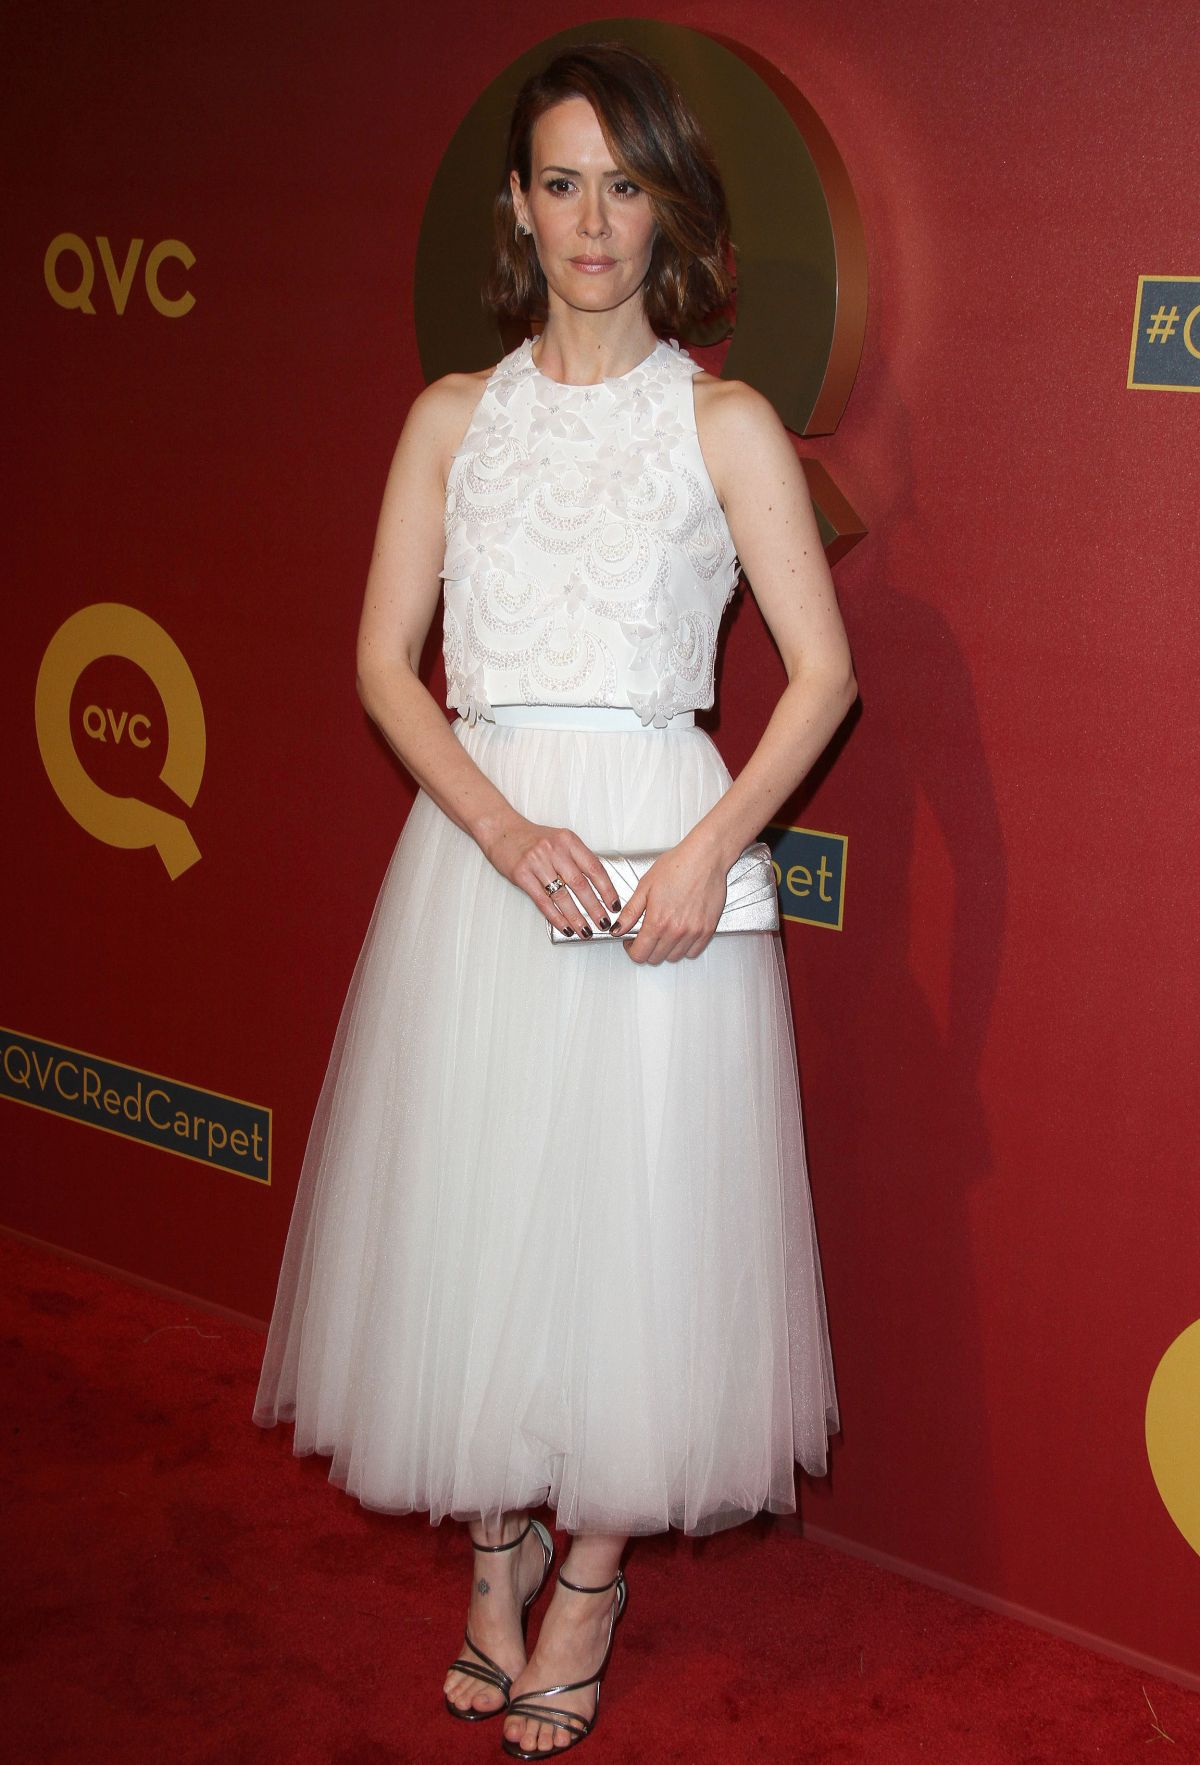 SARAH PAULSON at QVC 5th Annual Red Carpet Style Event in Beverly Hills